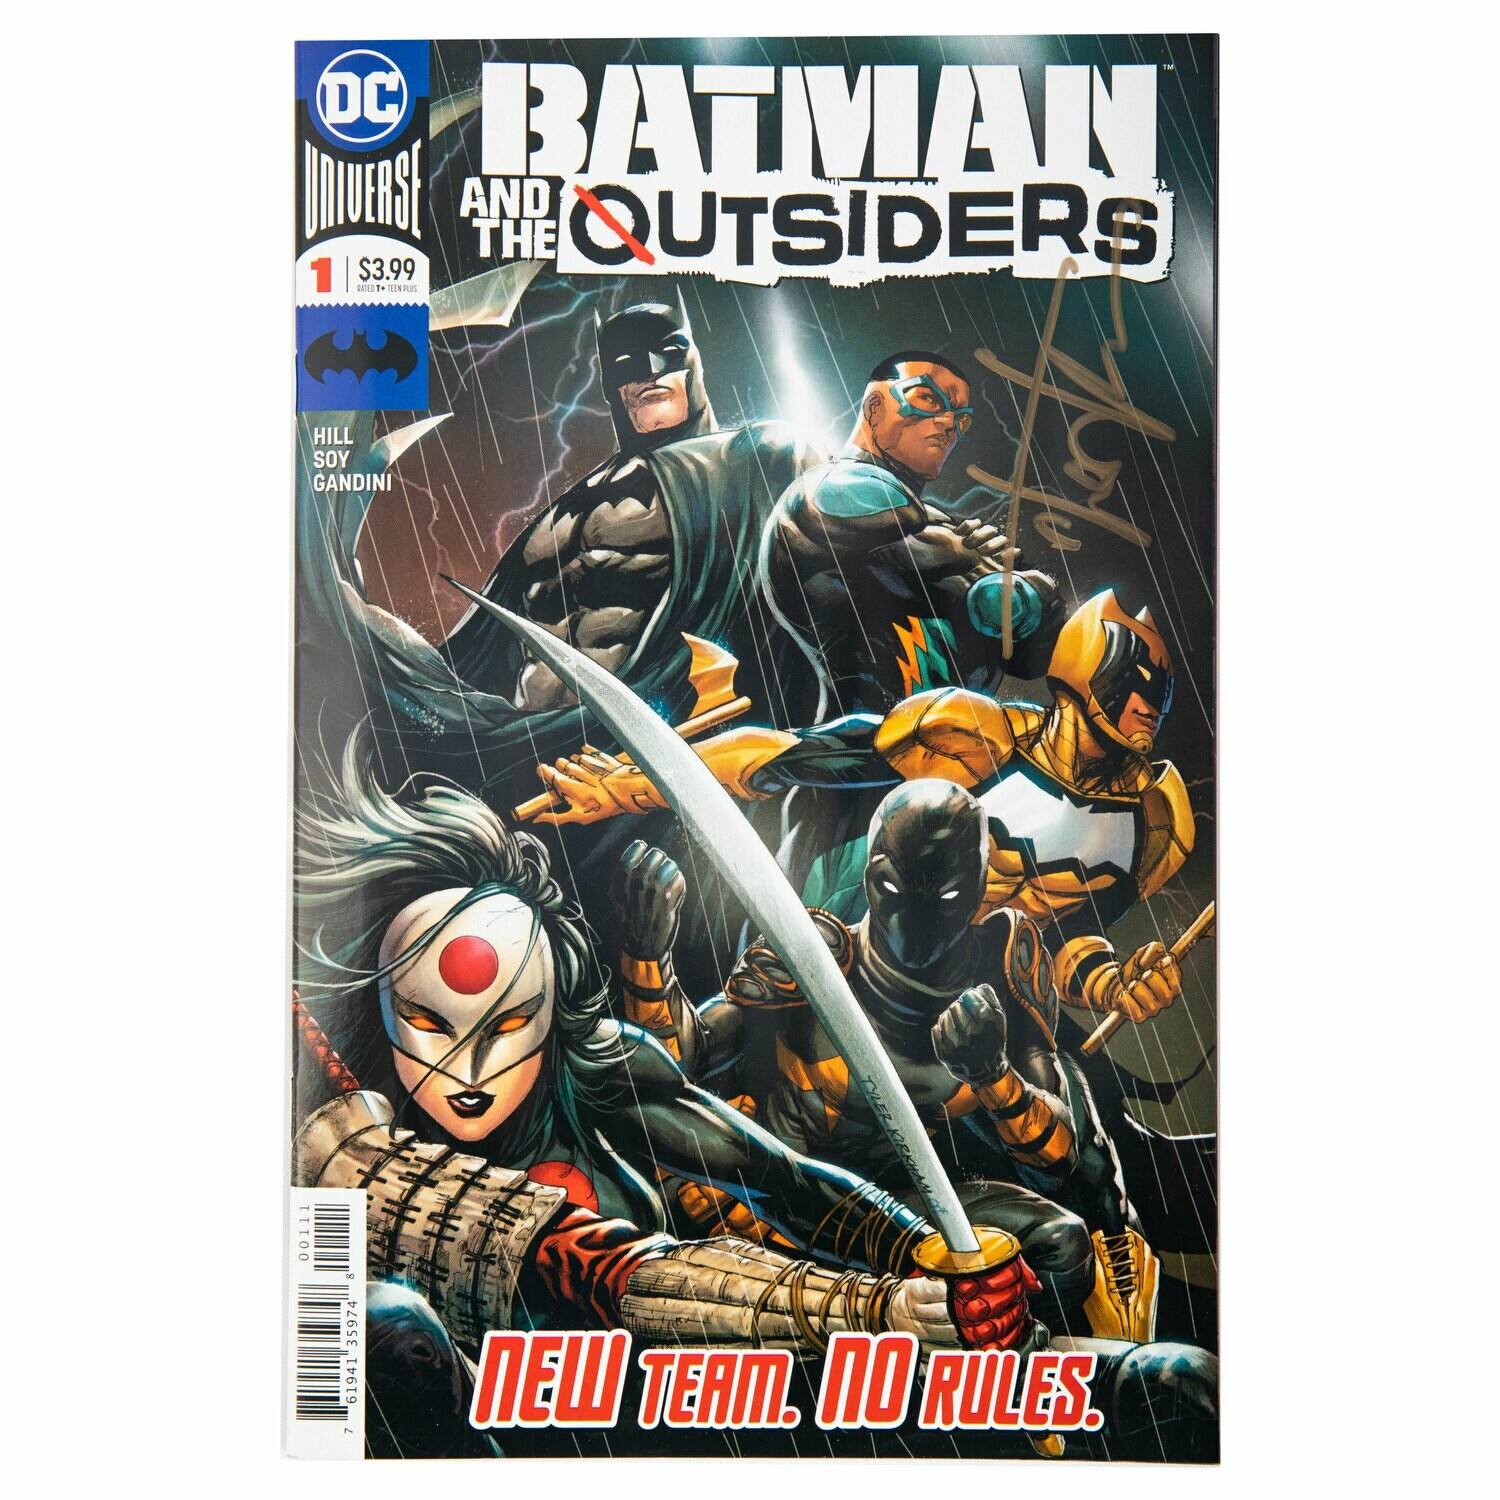 Batman And The Outsiders #1 (Signed By Tyler Kirkham)